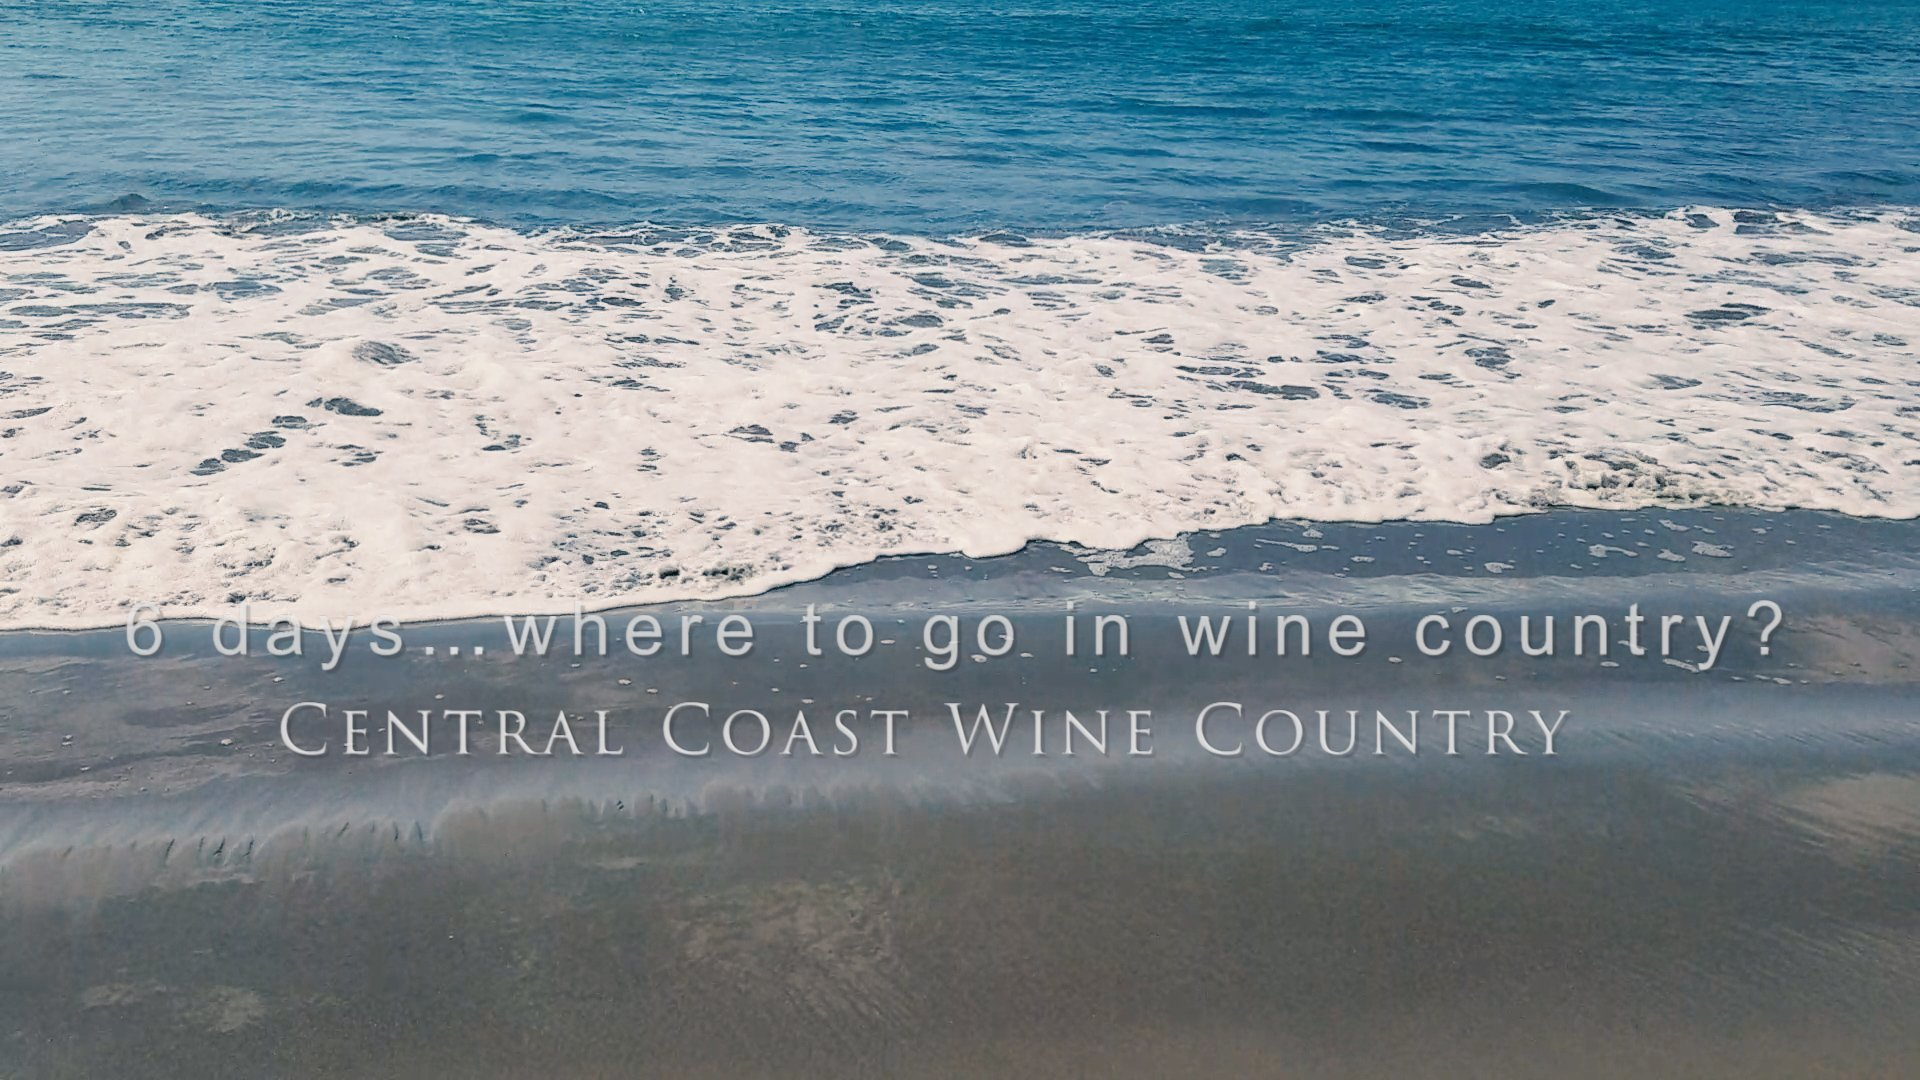 6 days…where to go in wine country? Well if you have a Prius and can get to California fairly easily, you don't have to choose. Join us on our journey through California's Central Coast Wine Country and a little beyond.